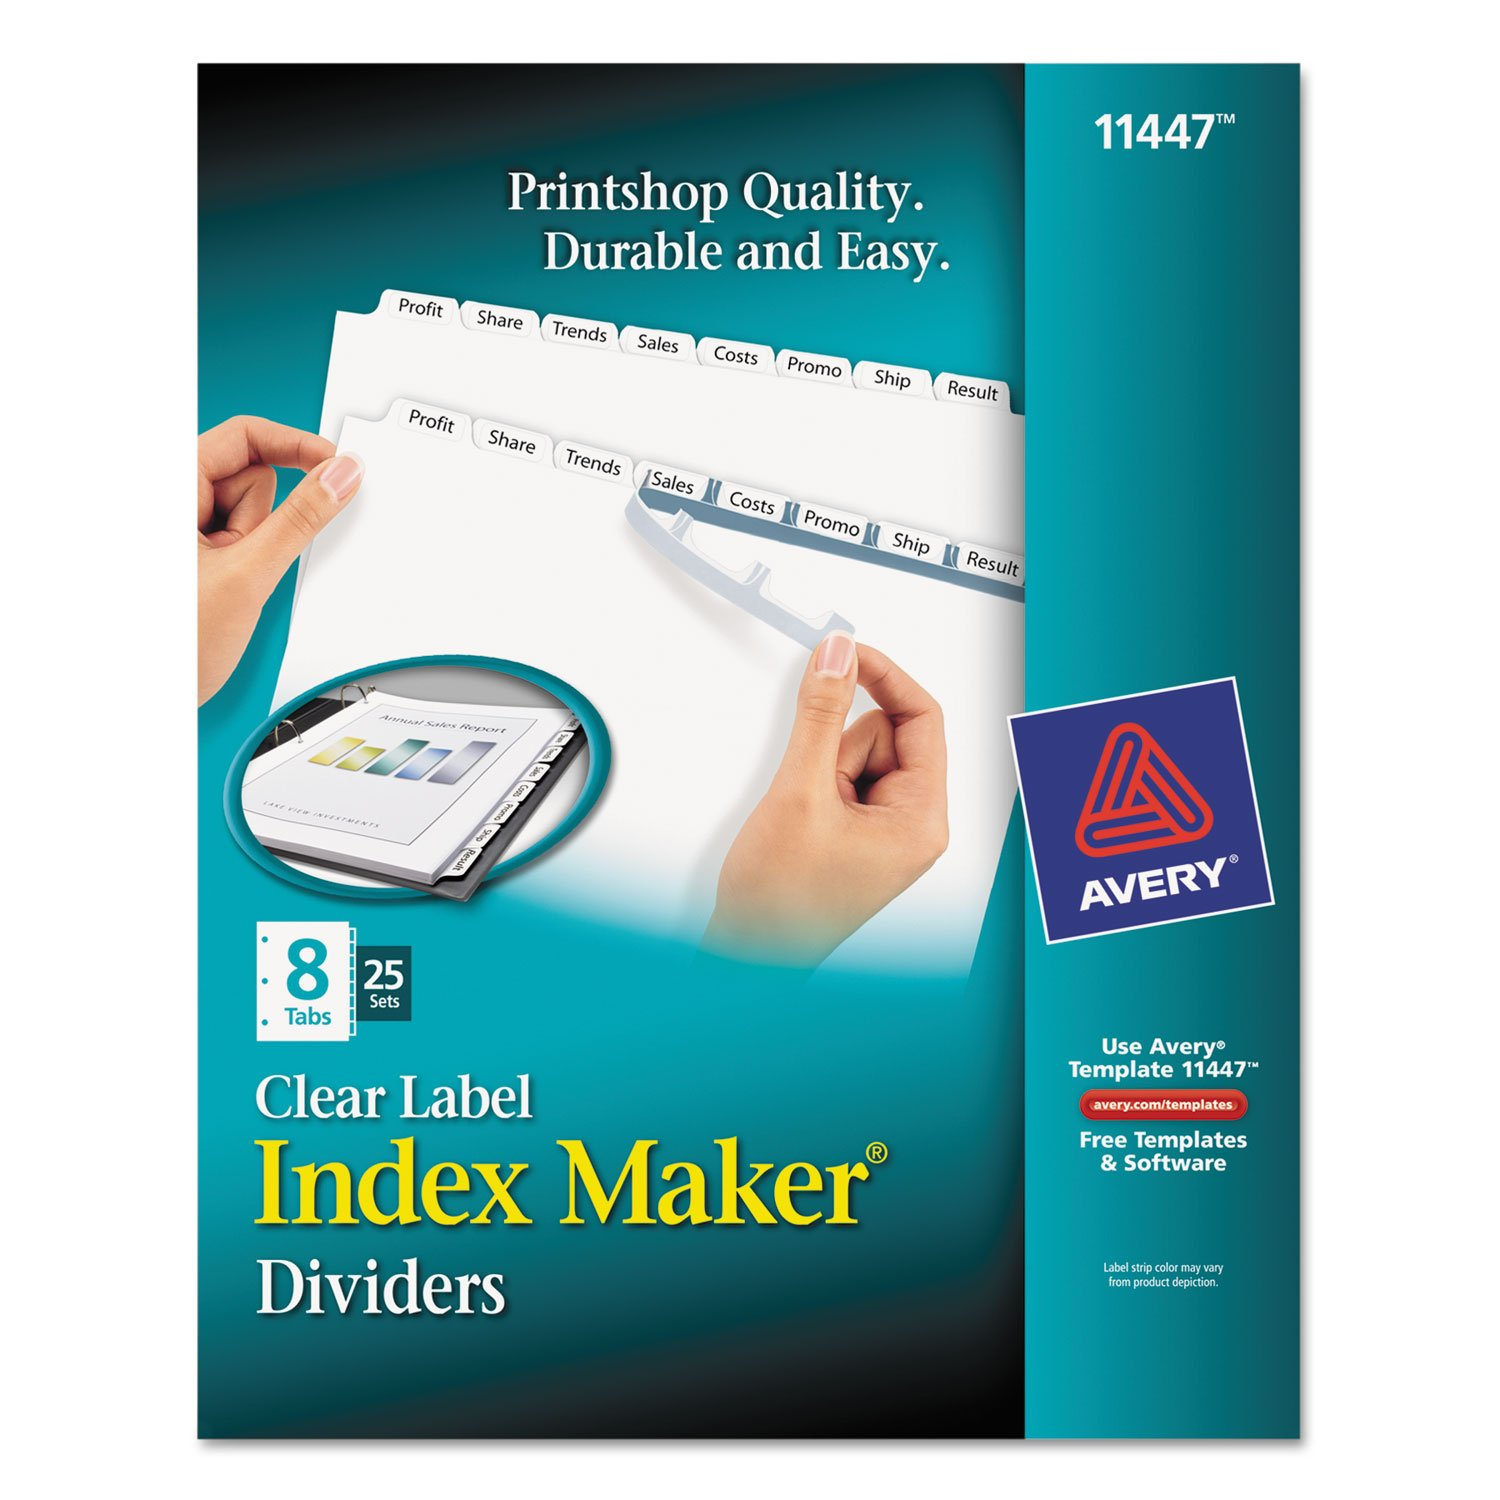 Avery 11447 Index Maker, Laser, Punched, 8-Tabs, 25 ST/BX,8-1/2'x11',CL 8-1/2x11 AVERY-DENNISON-KNM